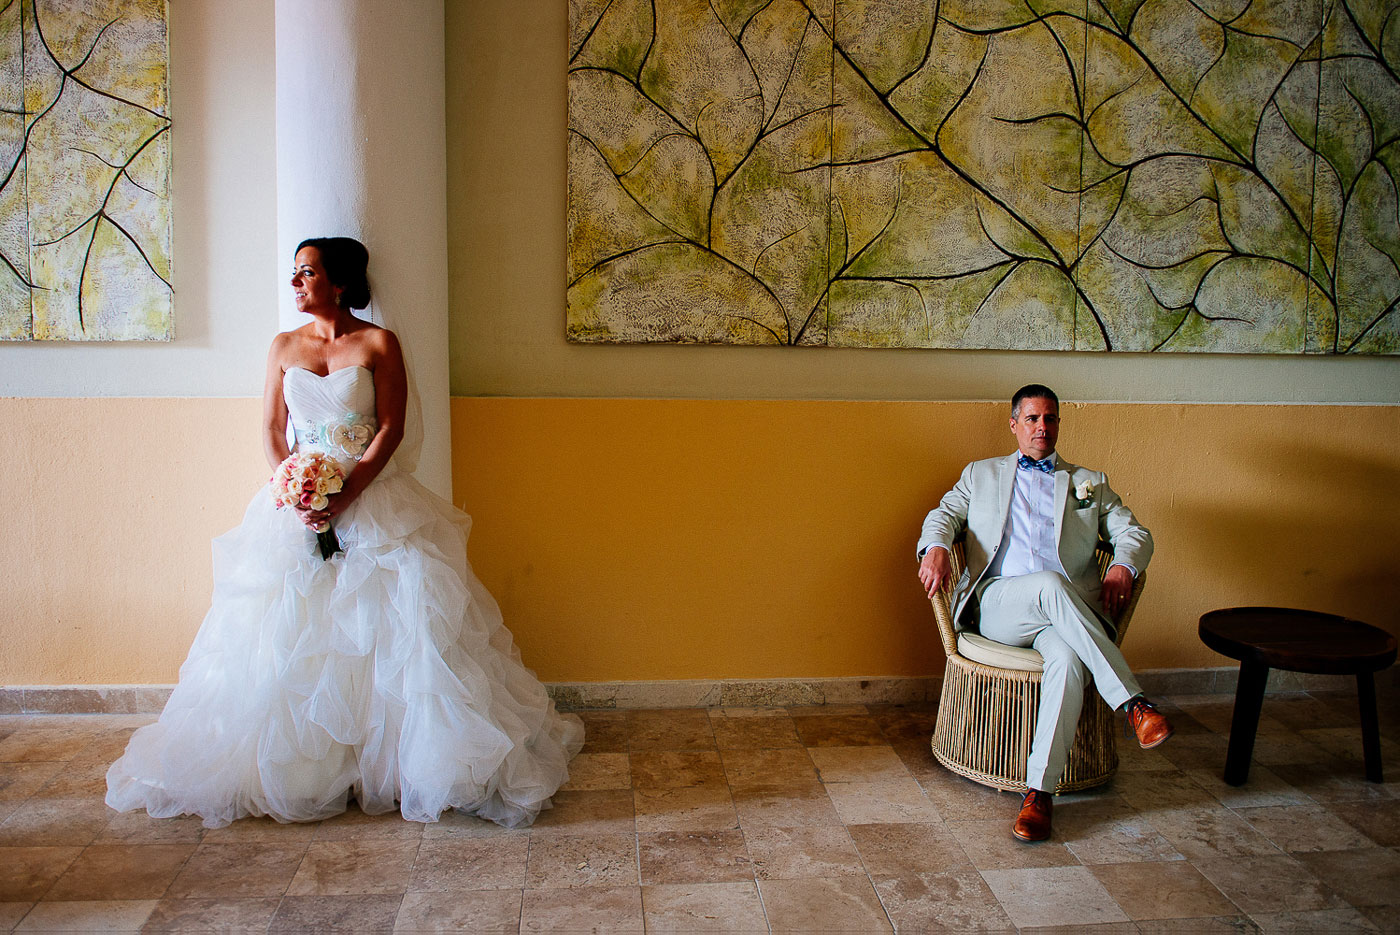 Sebi Messina Photography - Weddings - Mexico